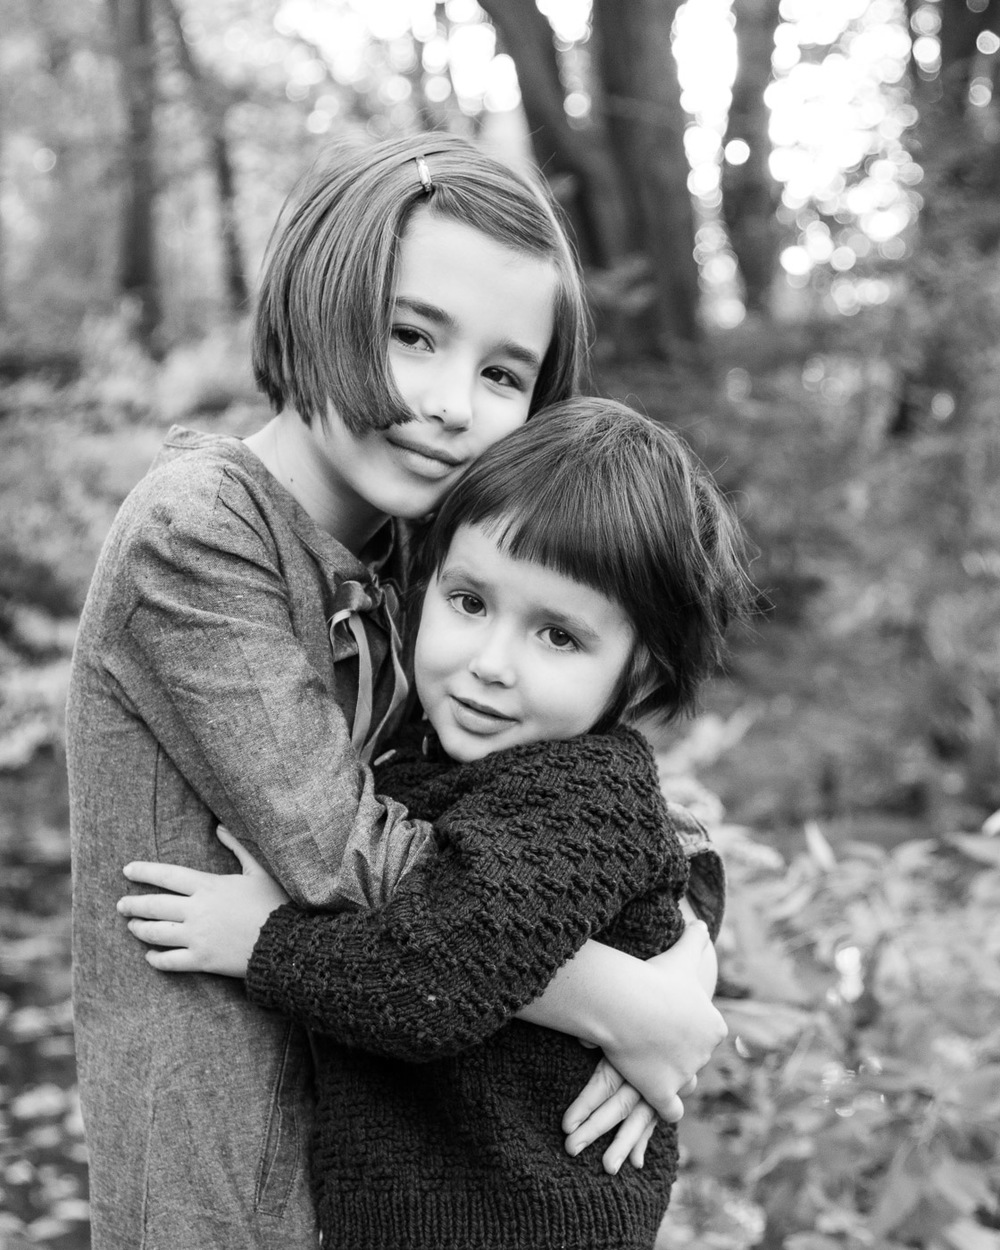 Children's portrait photography - B&W